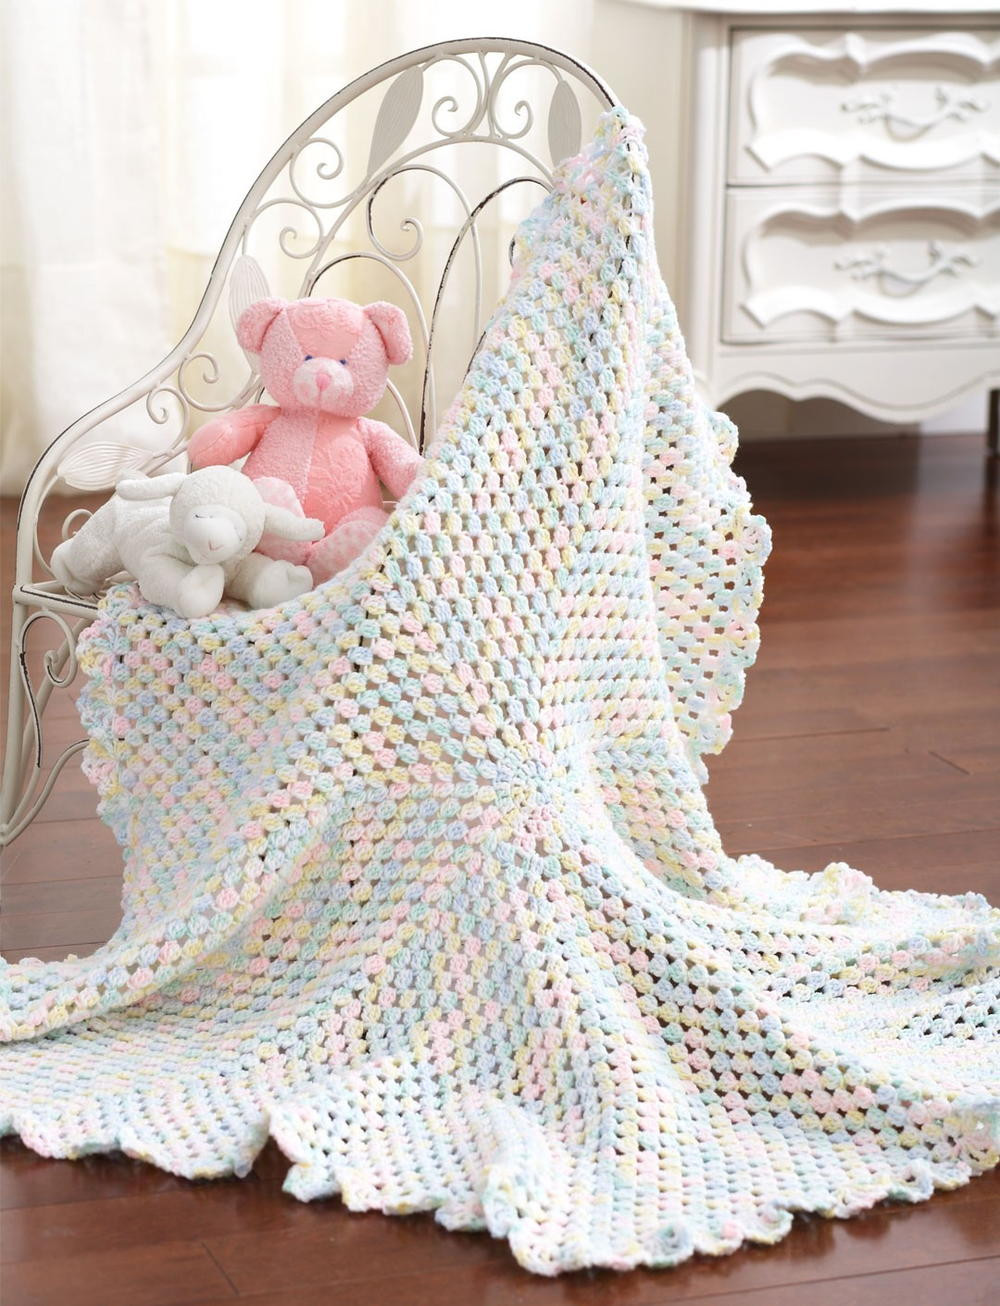 Bernat Crochet Baby Blanket Luxury Marshmallow Baby Blanket Of Wonderful 44 Models Bernat Crochet Baby Blanket